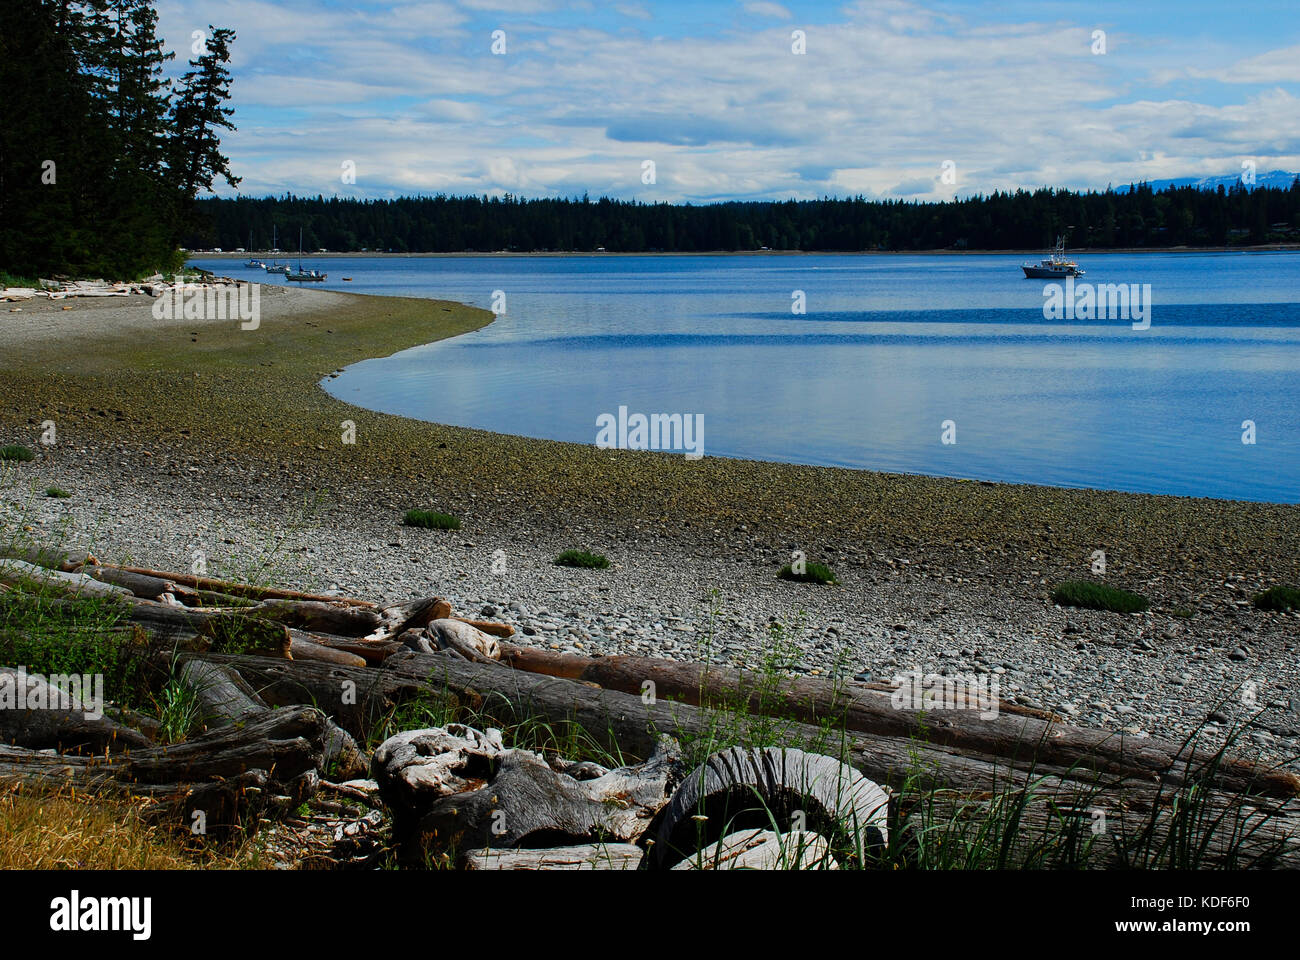 Quadra Island is one of the Discovery Islands, located between Vancouver Island and mainland British Columbia, Canada - Stock Image